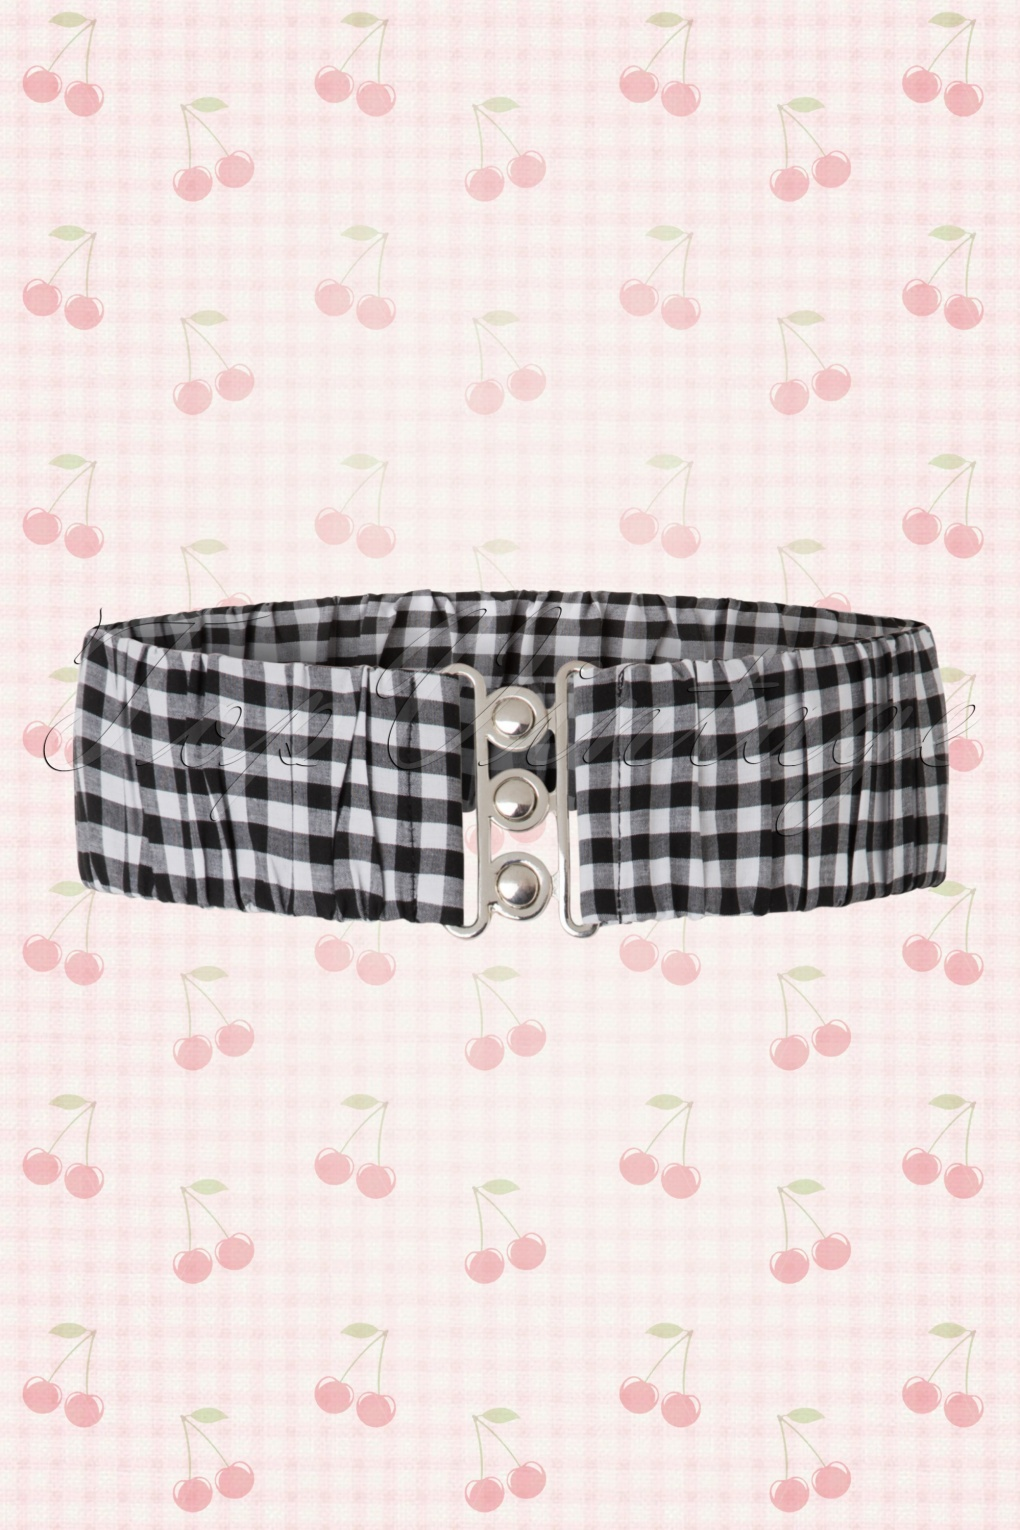 A History of Belts 1920-1960 50s Curvy Retro Gingham Belt in Black and White £7.59 AT vintagedancer.com